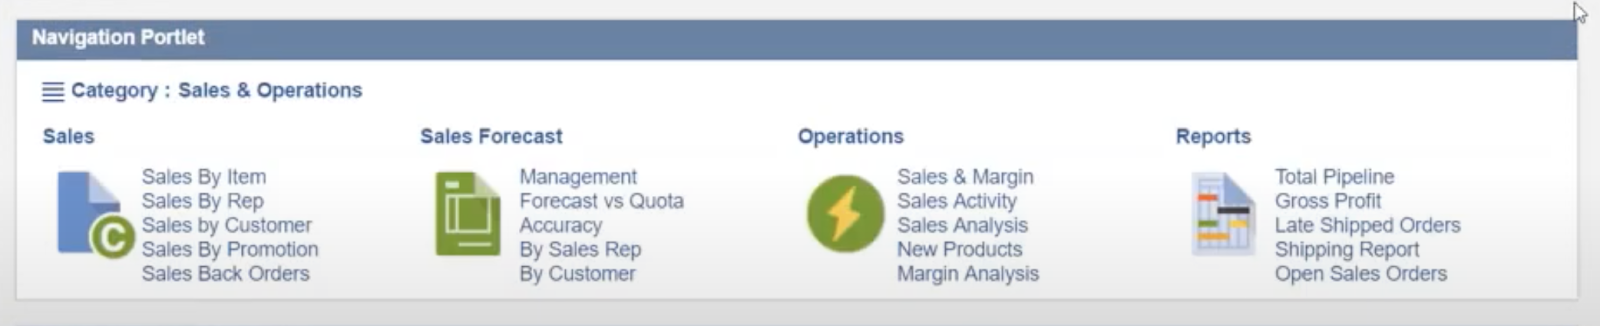 NetSuite's navigation portlet, shown at the top of the dashboard.